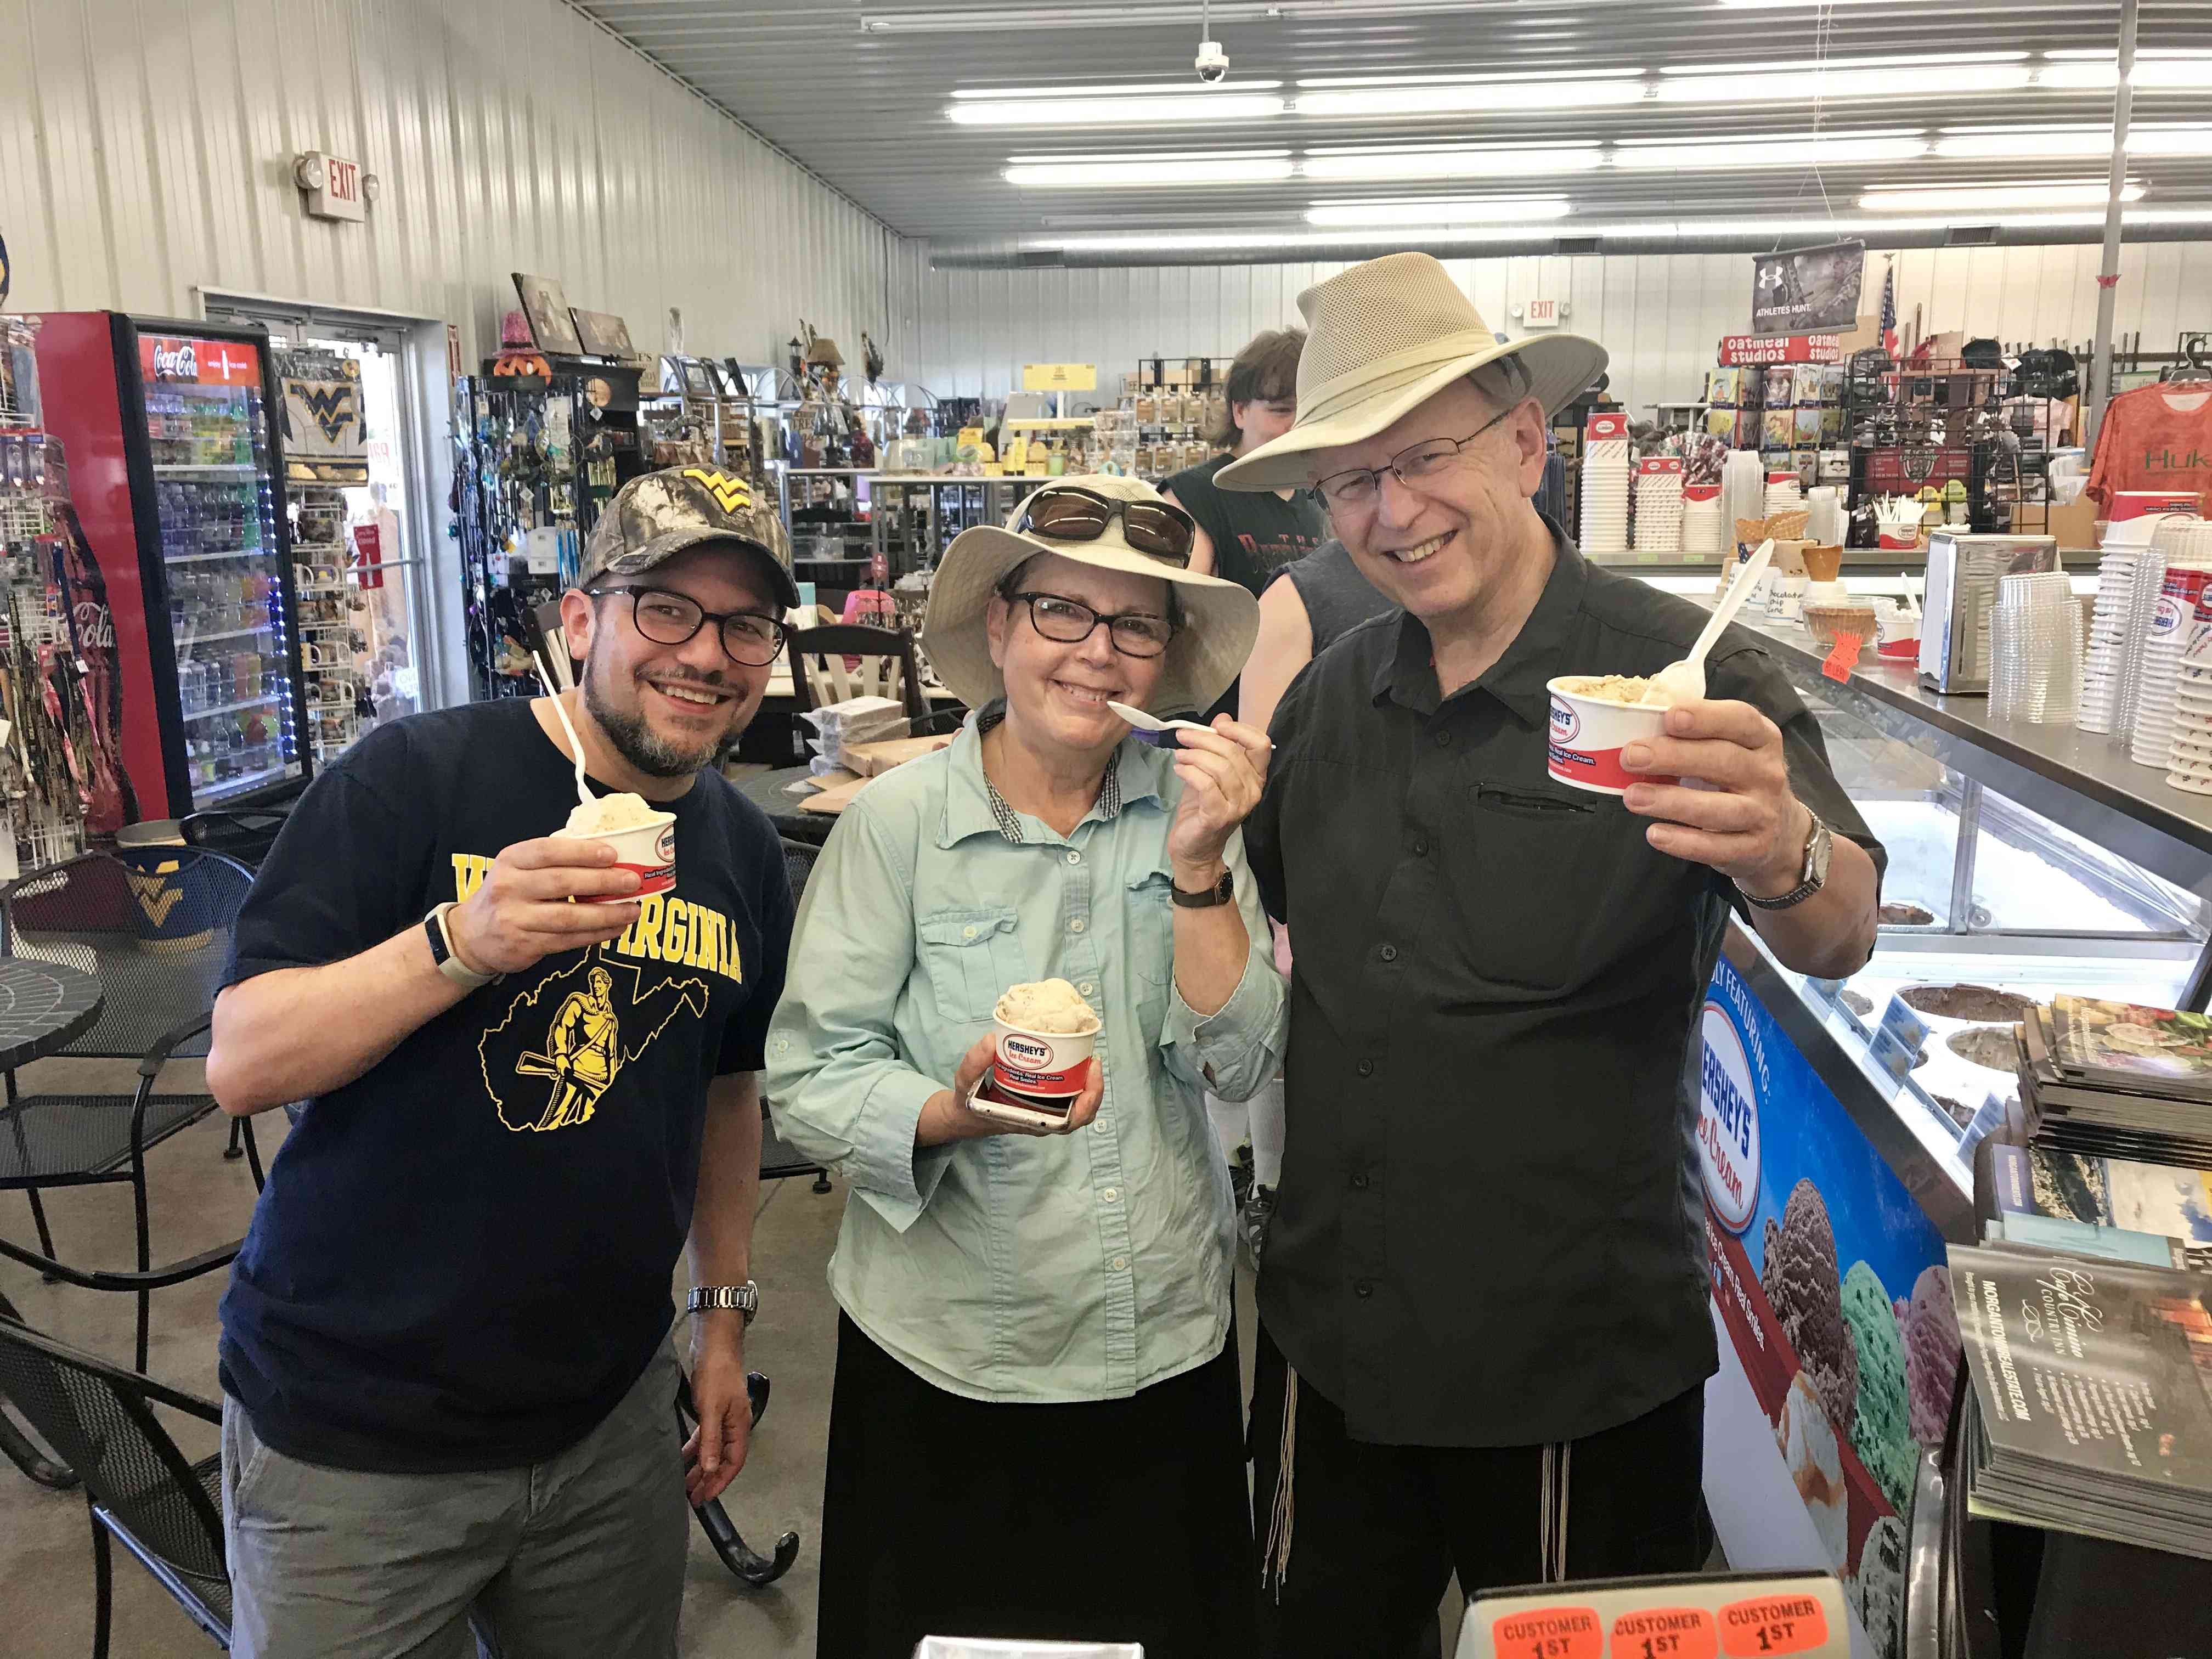 Anytime we have family visit from out of town, like my parents, the gun and ice cream shop is always a must-see.